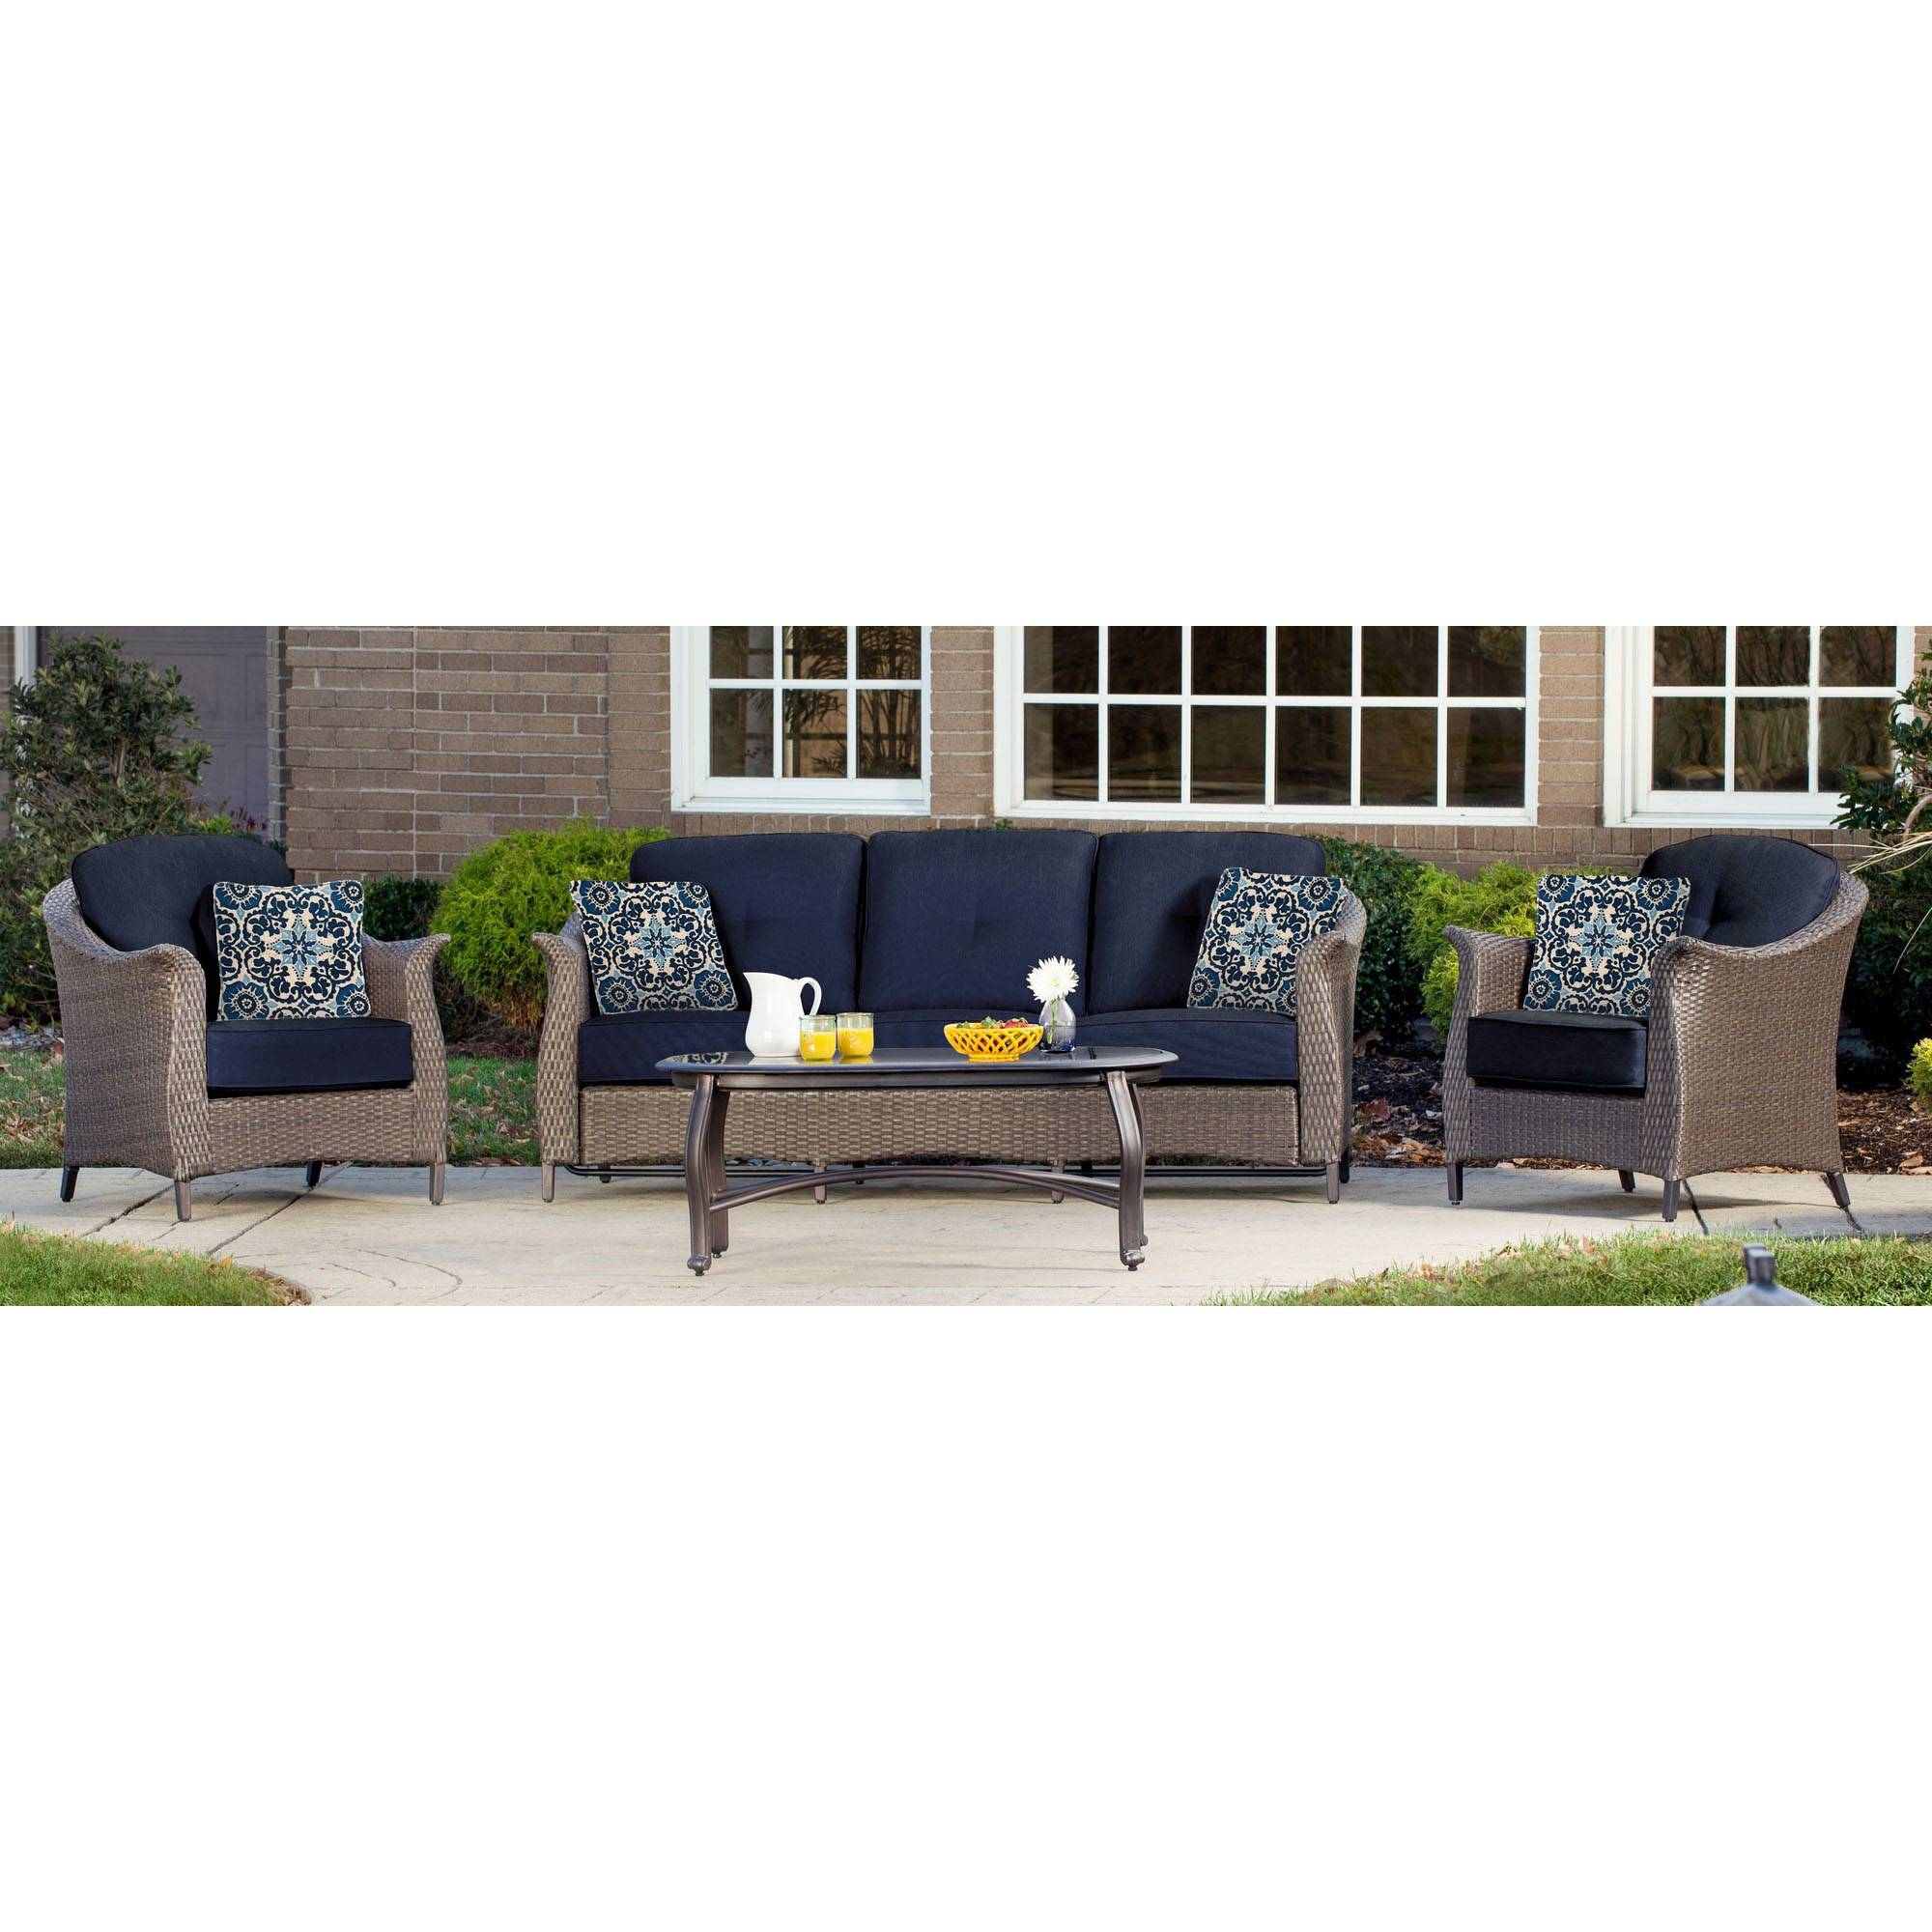 Inspirational Mainstays Ragan Meadow II Piece Outdoor Sectional Sofa Seats Walmart